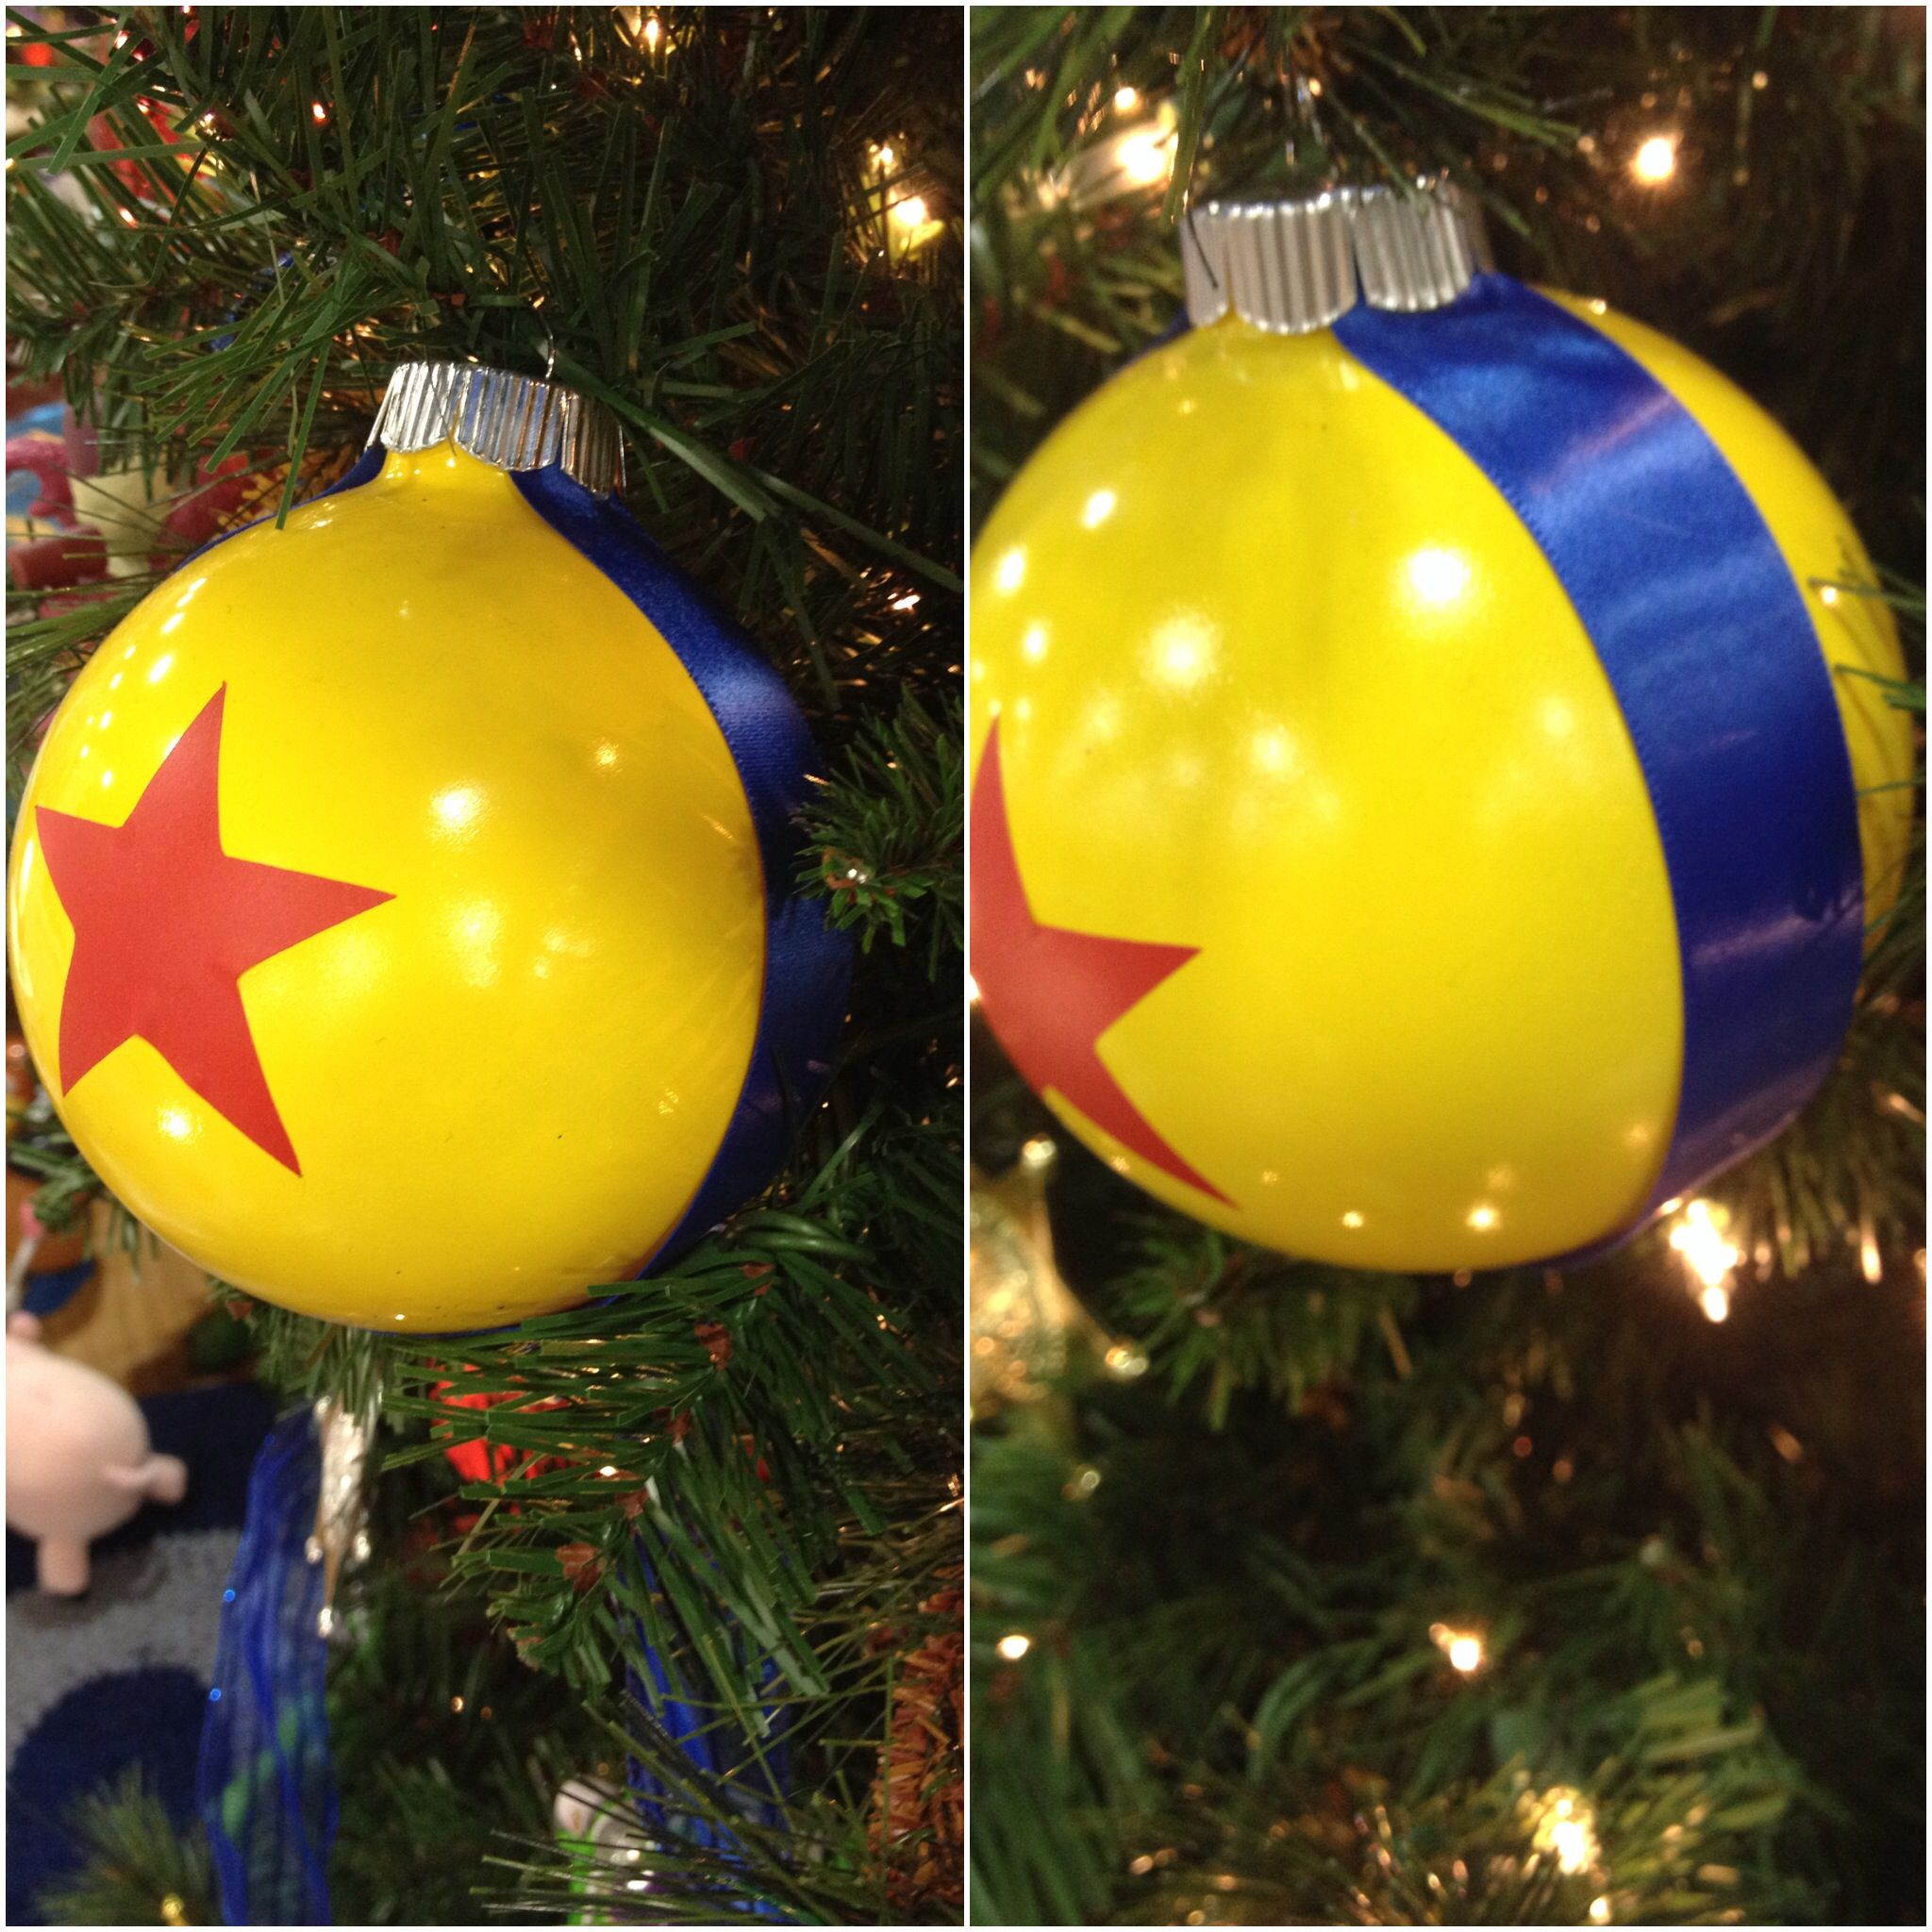 Toy Story Christmas Ornaments.Toy Story Ornament Ornament Swap Disney Christmas